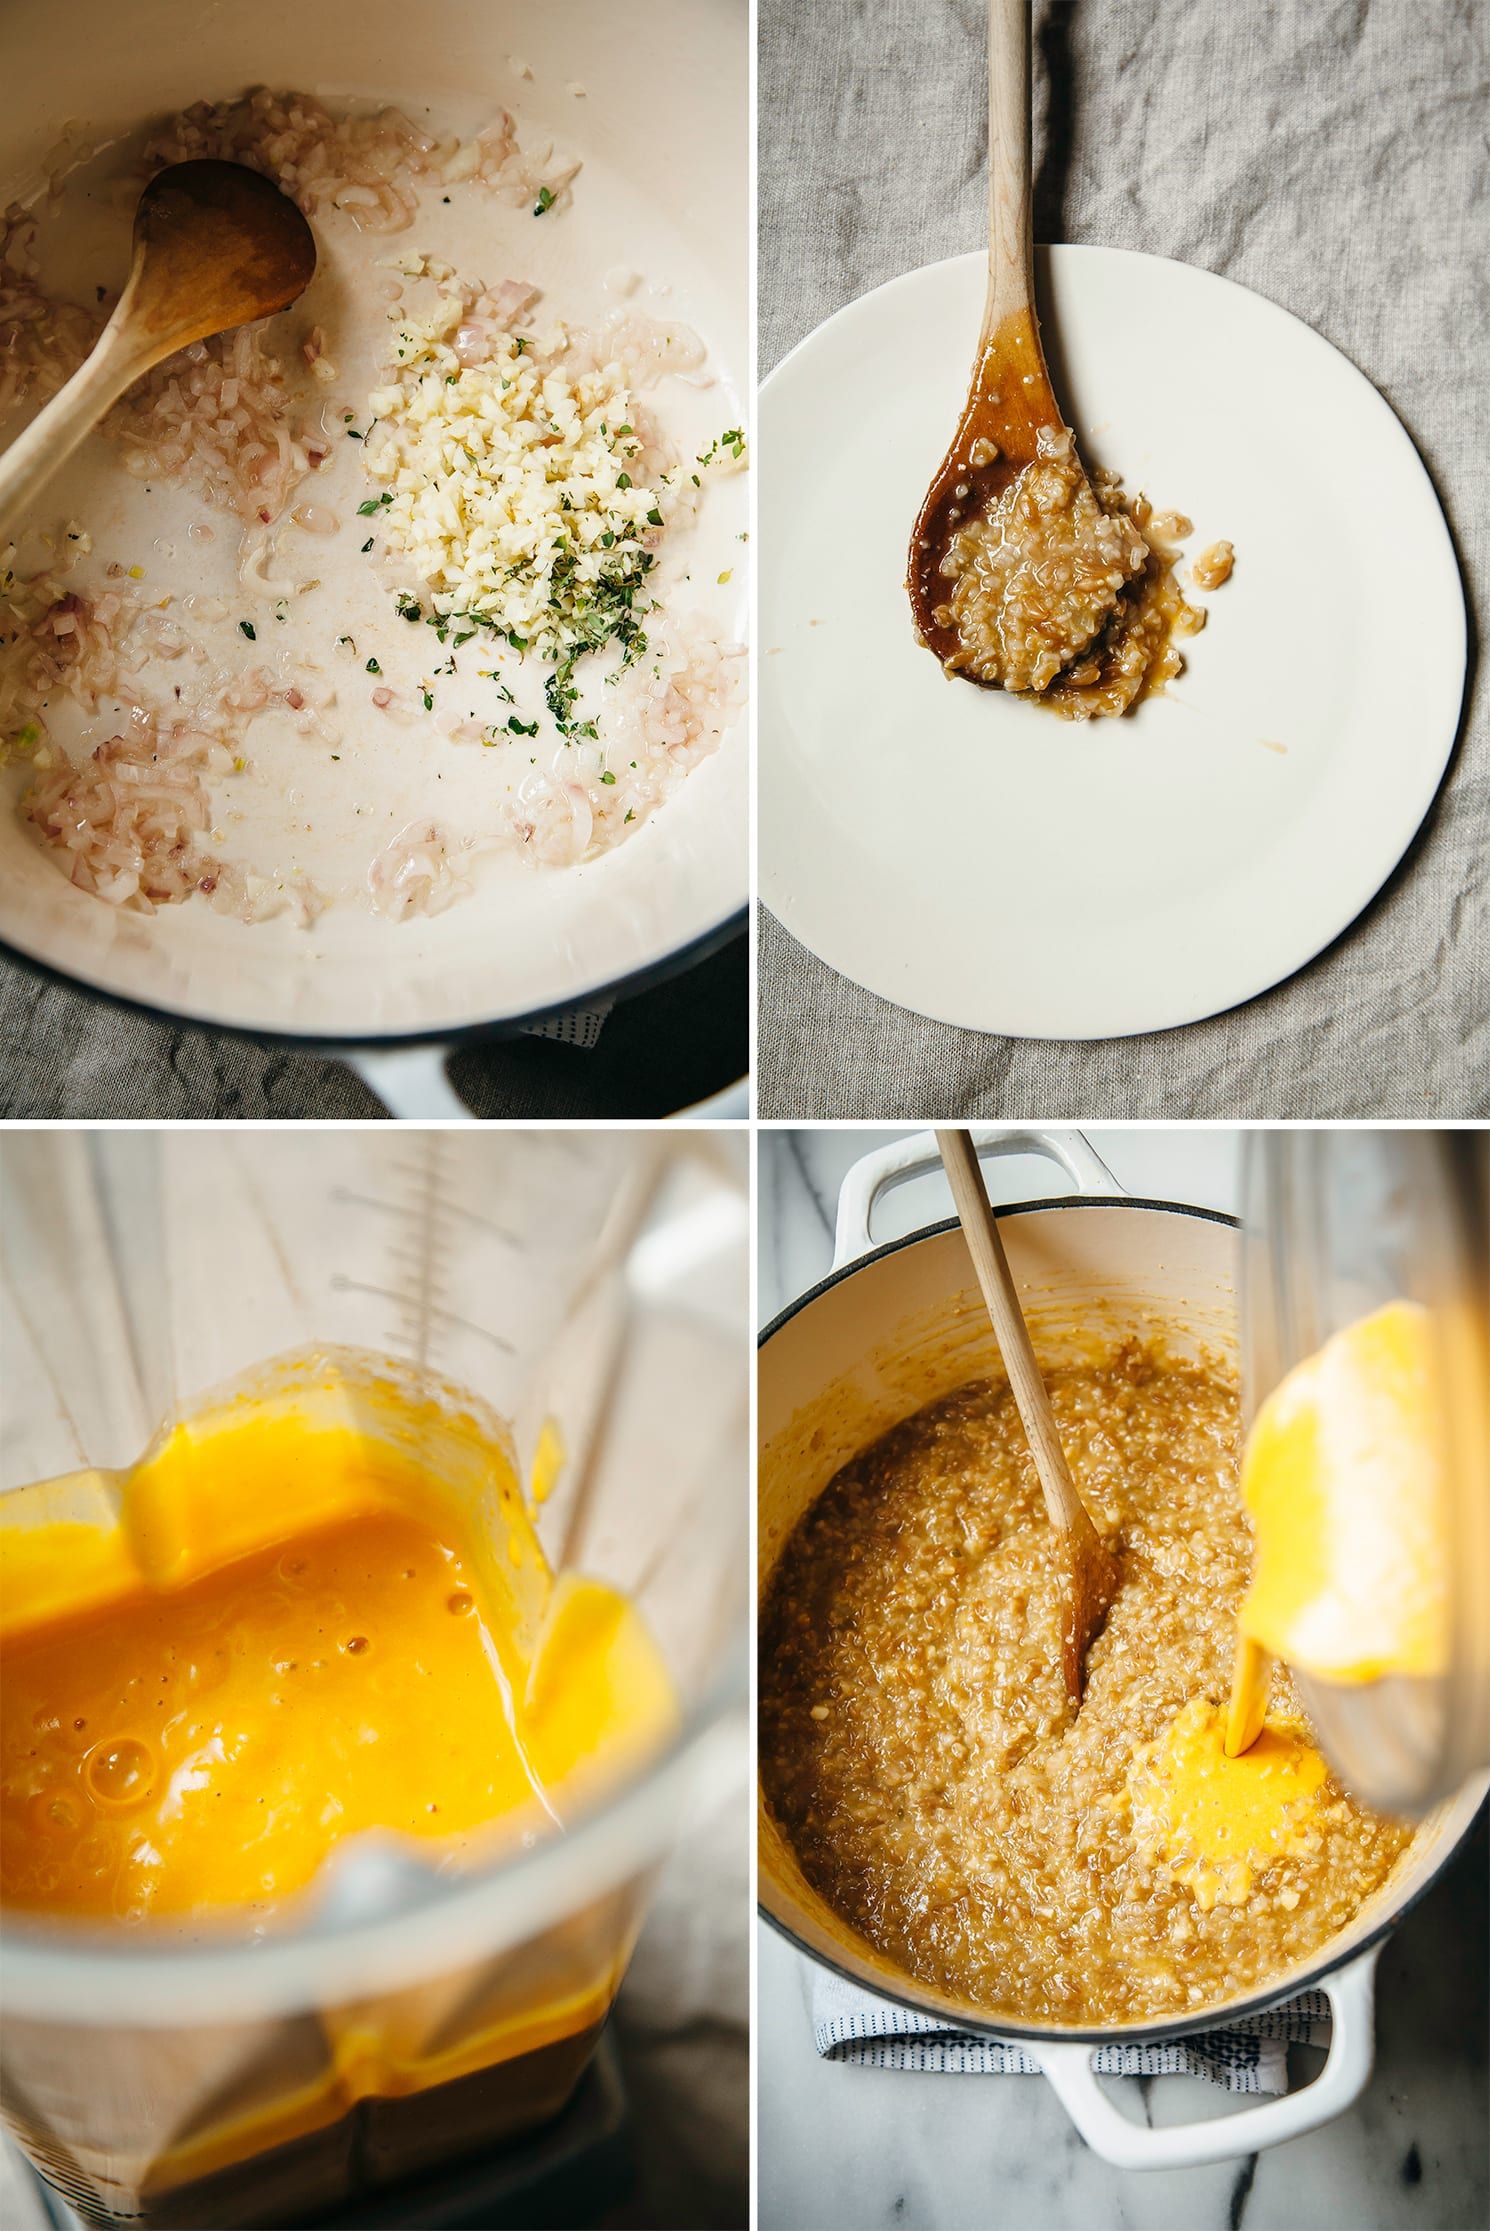 Four images show sautéed shallots in a pot, the consistency of starchy cooked farro on a wooden spoon, a butternut squash purée in a blender pitcher, and the butternut purée being added to cooked farro.